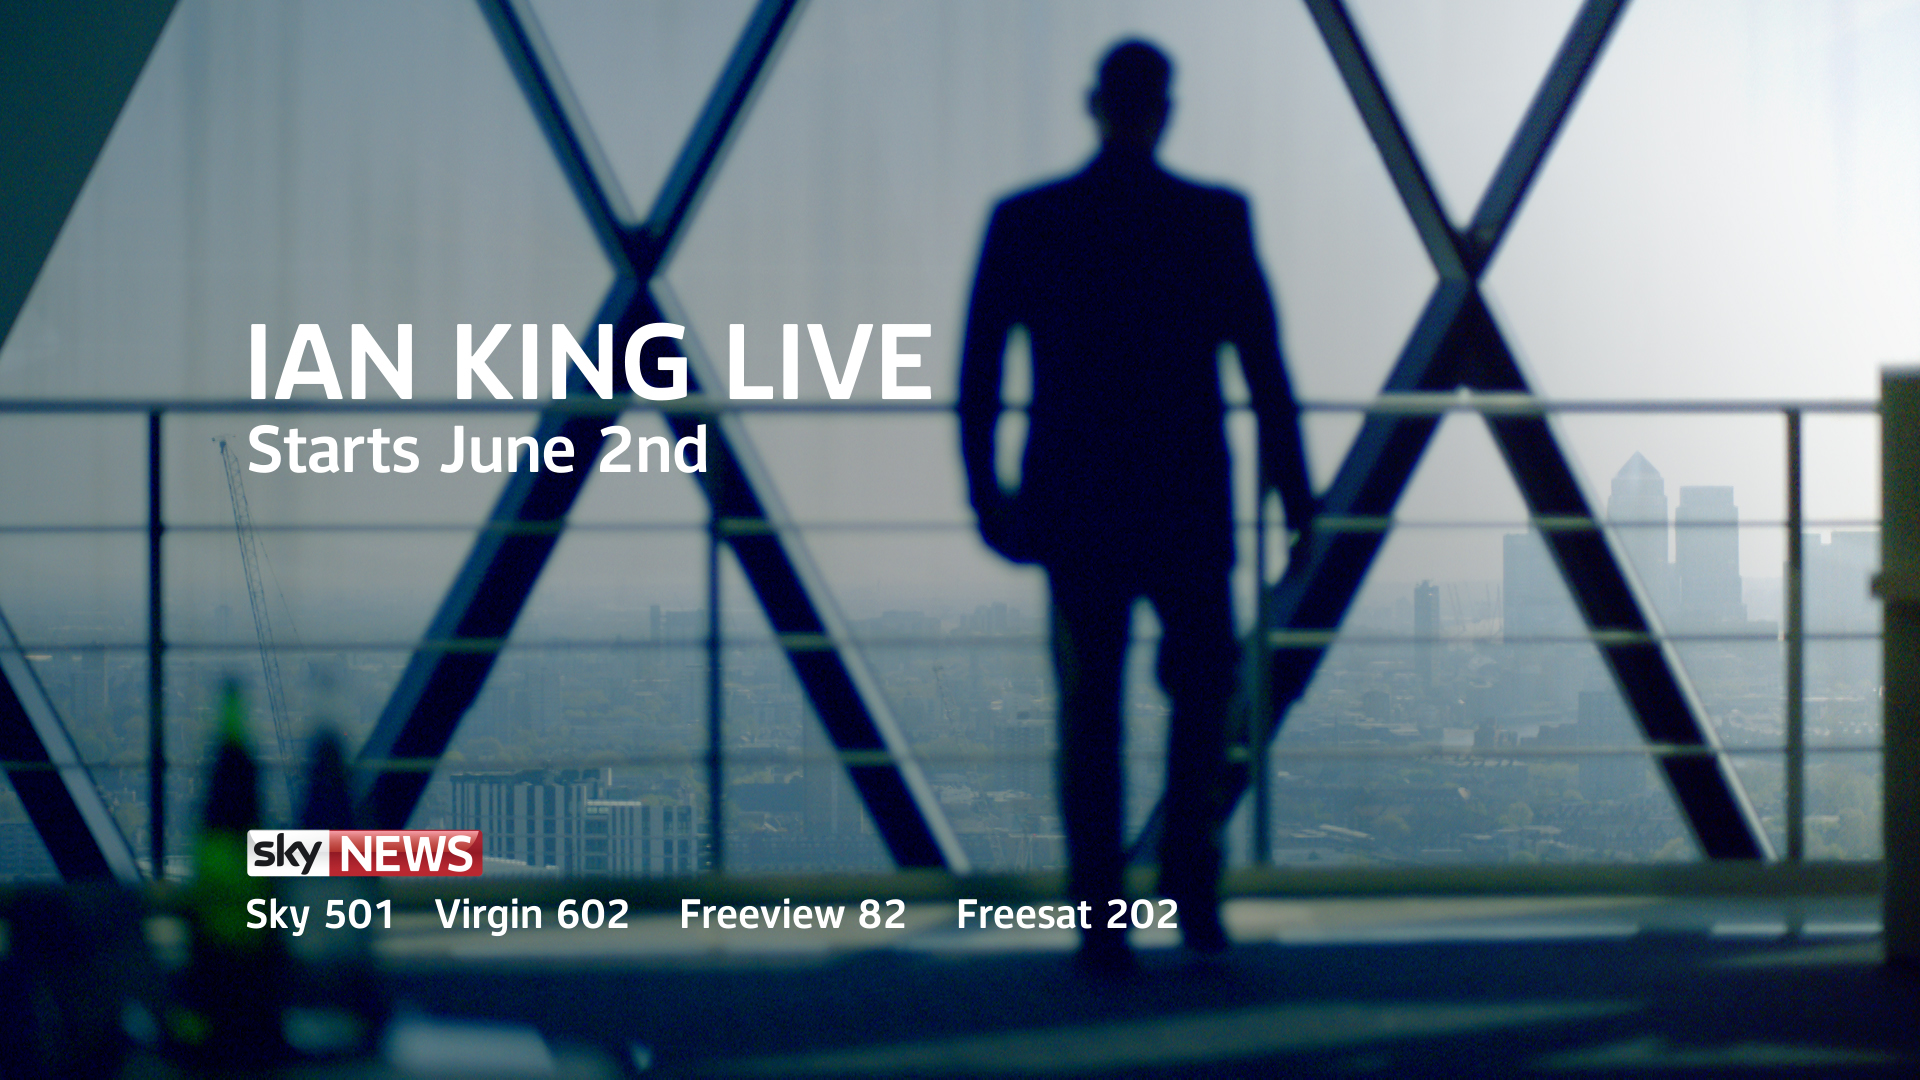 Sky News: 'Ian King Live' to launch on 2nd June 2014